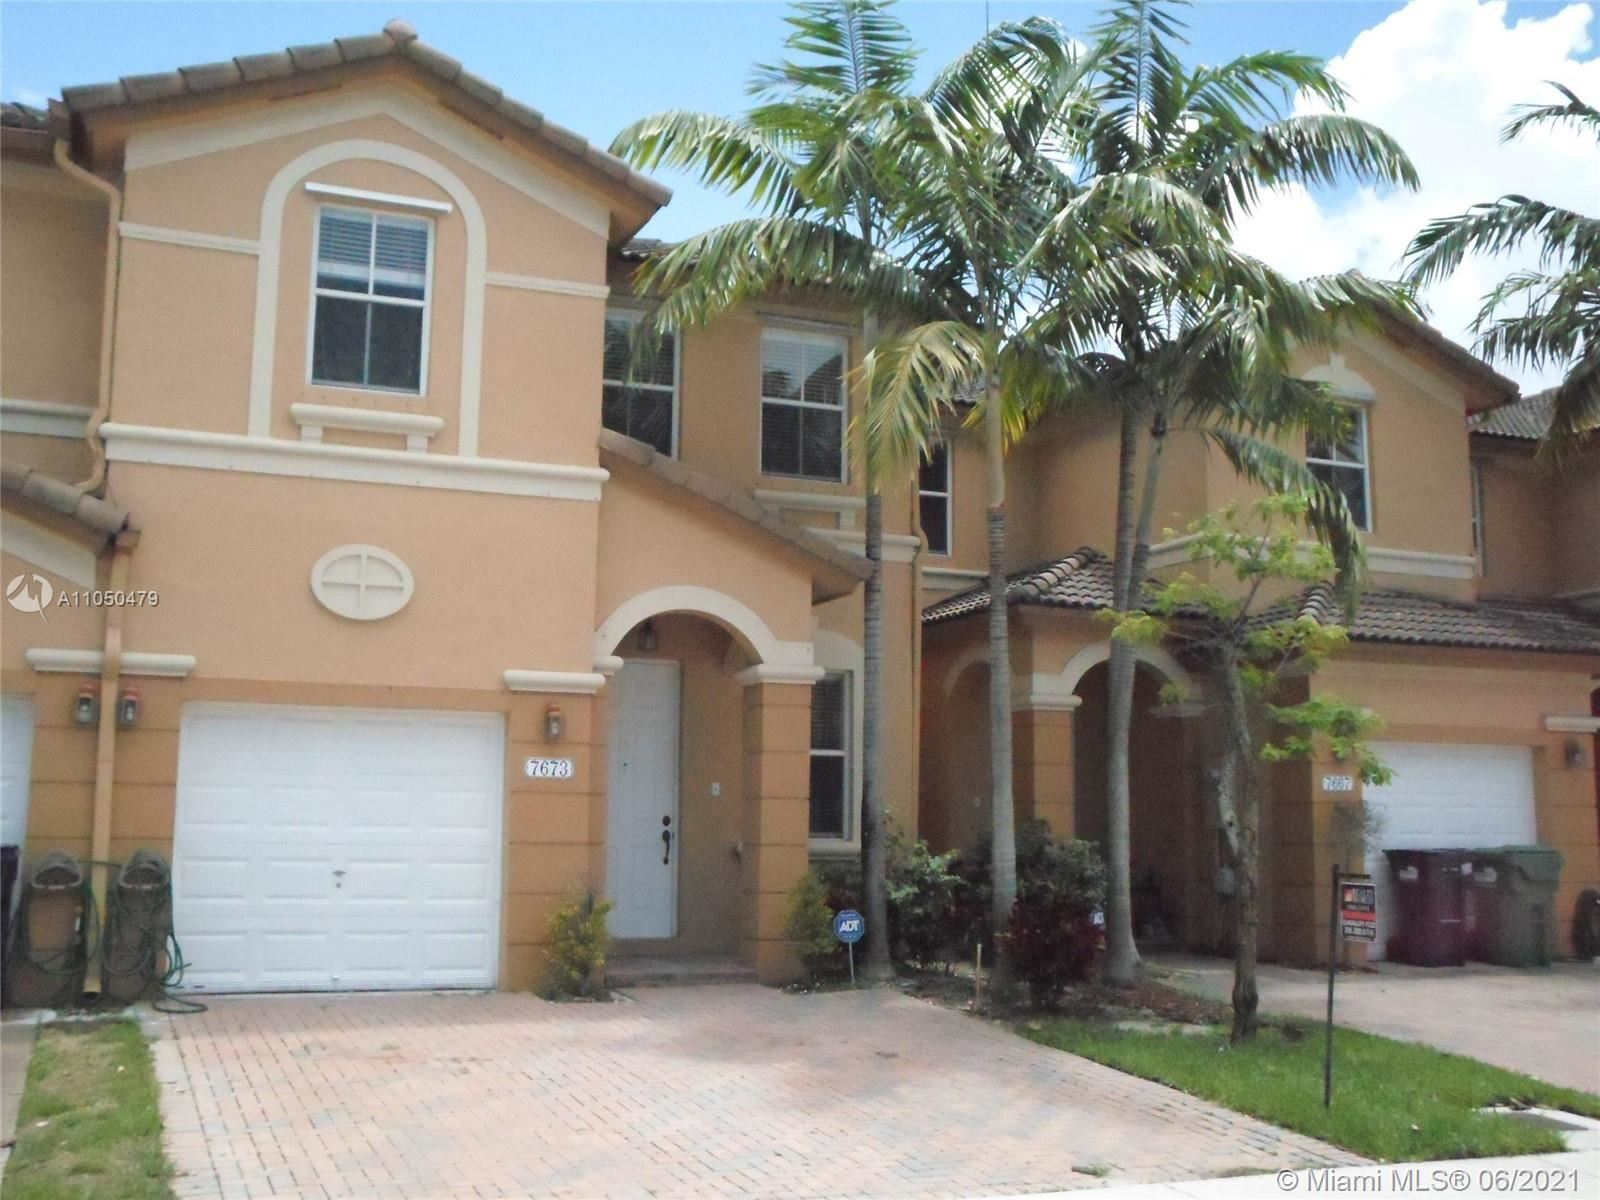 7673 NW 116th Ave #7673, Doral, FL 33178 - #: A11050479